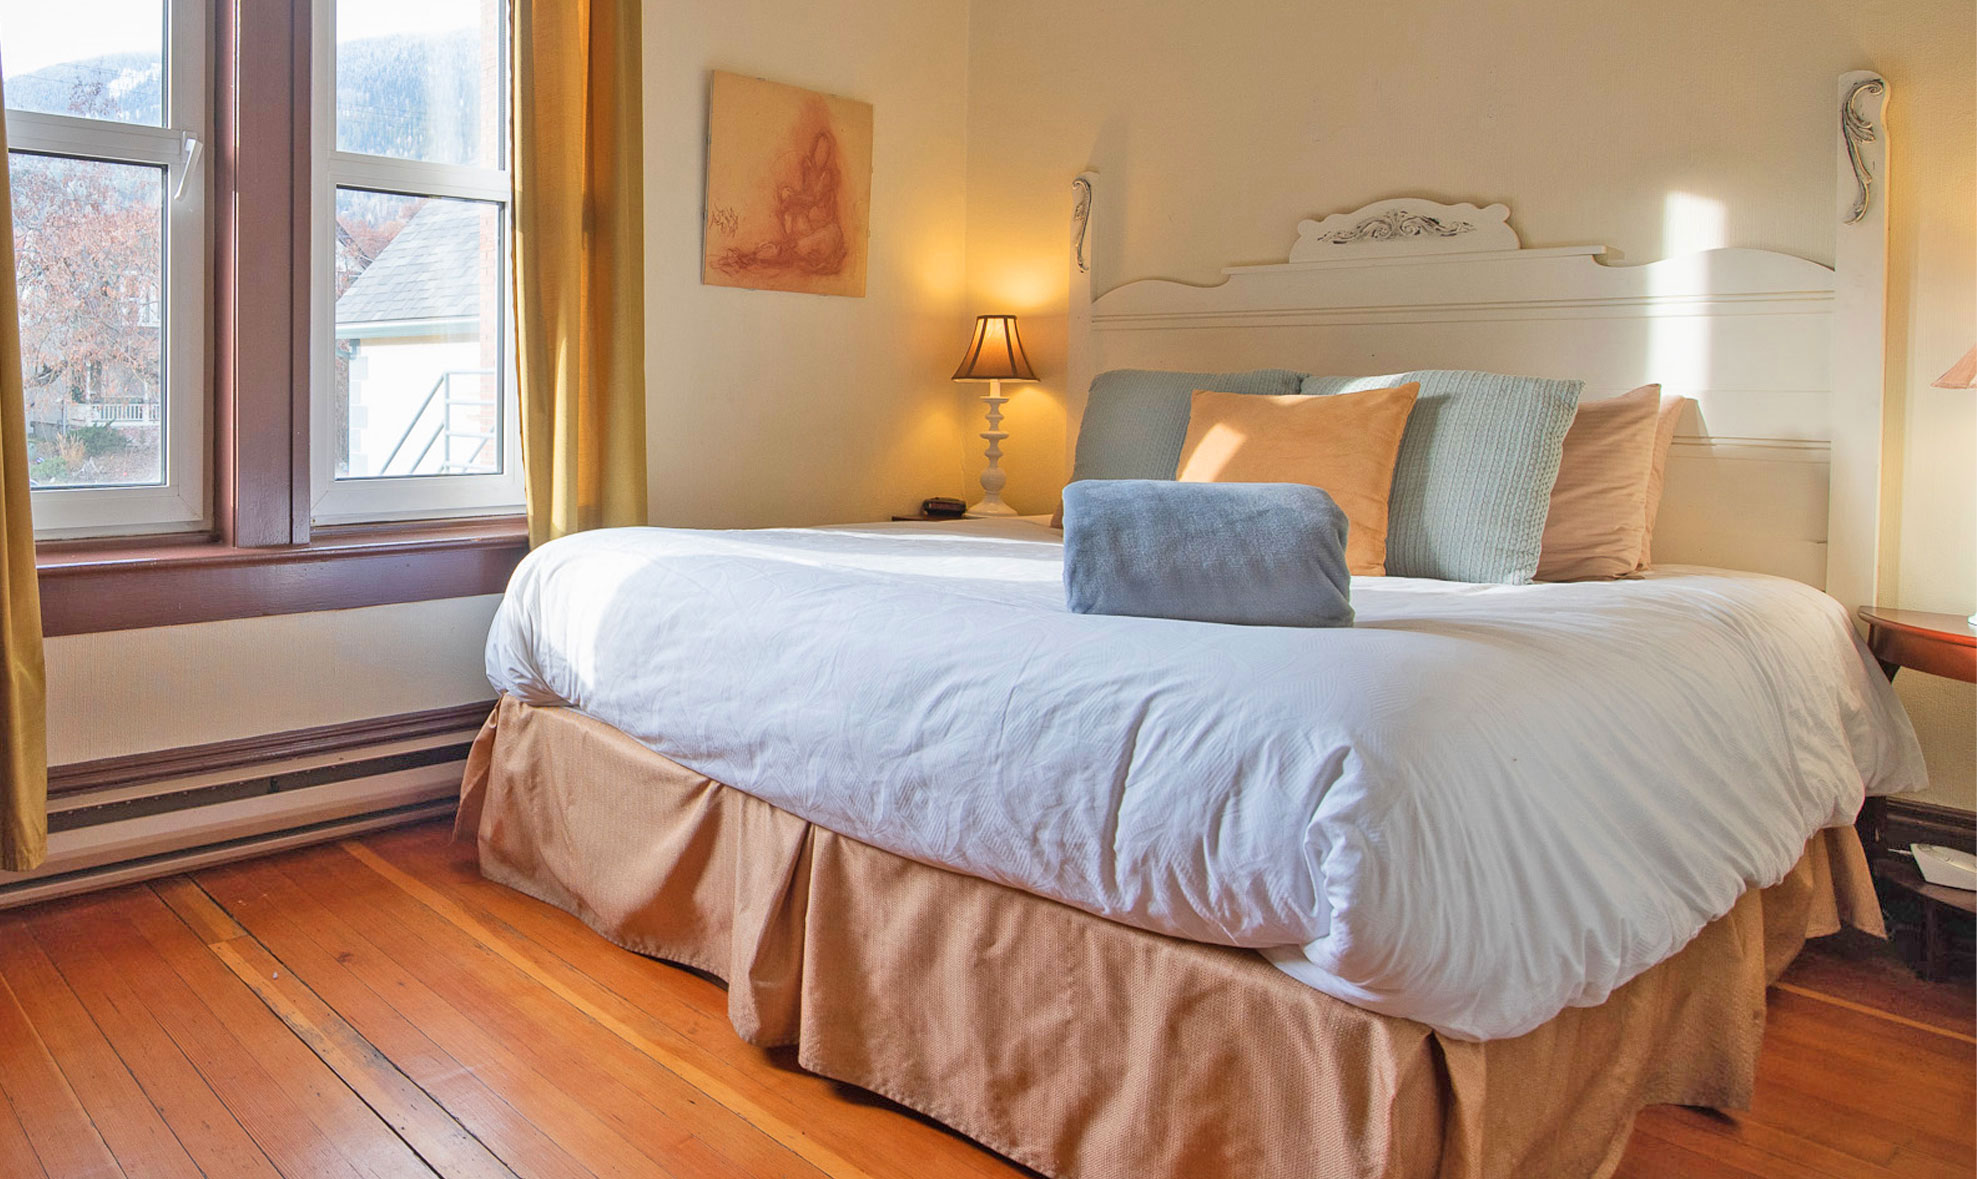 Victoria-Falls-House-The-Best-Vacation-Rental-Suites-Accommodation-in Nelson-BC